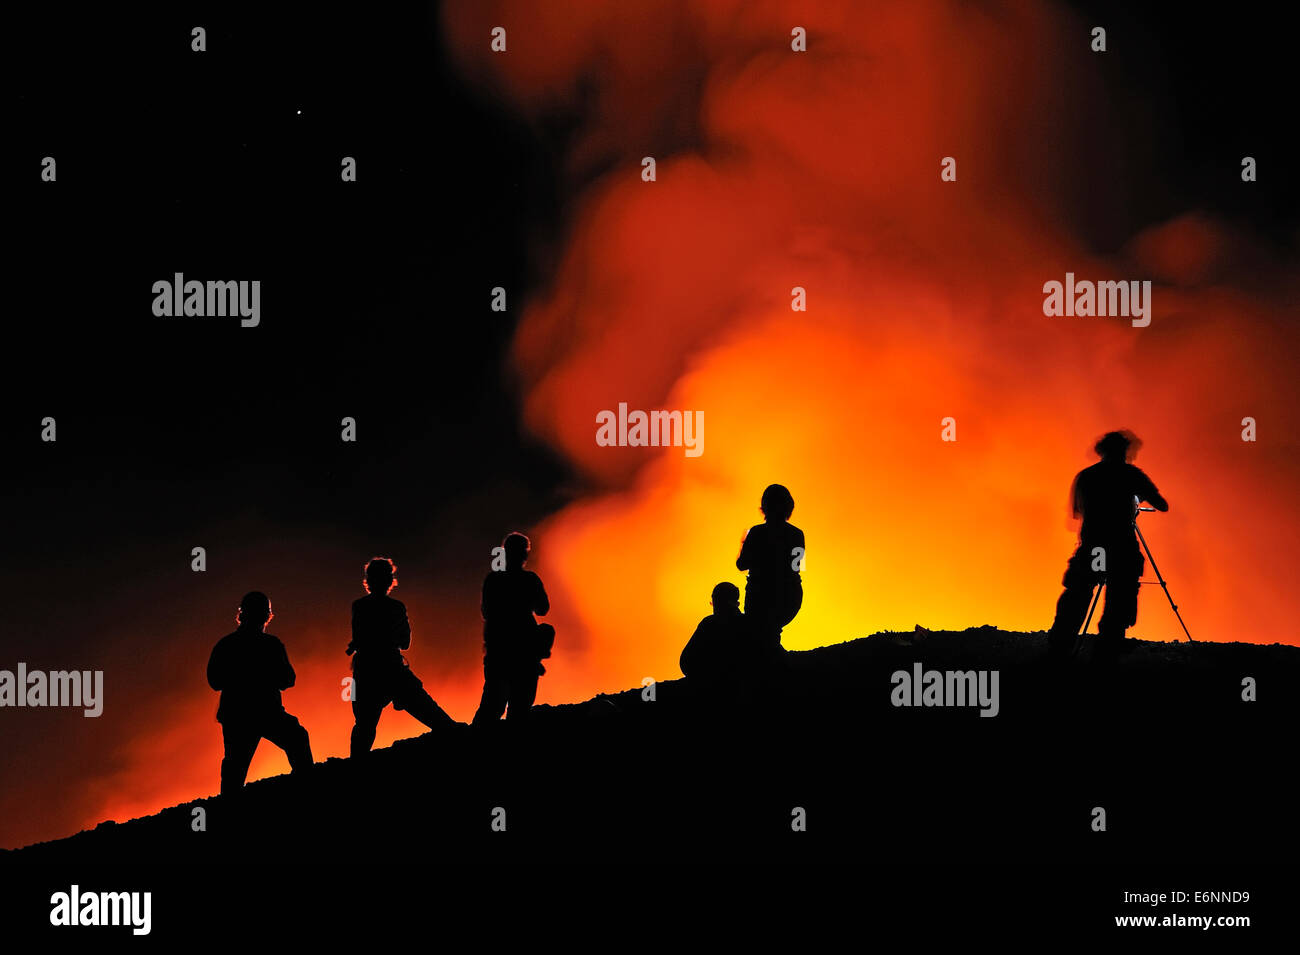 Hawaii Volcanoes National Park - People watching lava flowing to the sea from Kilauea Volcano, Big Island, Hawaii, - Stock Image